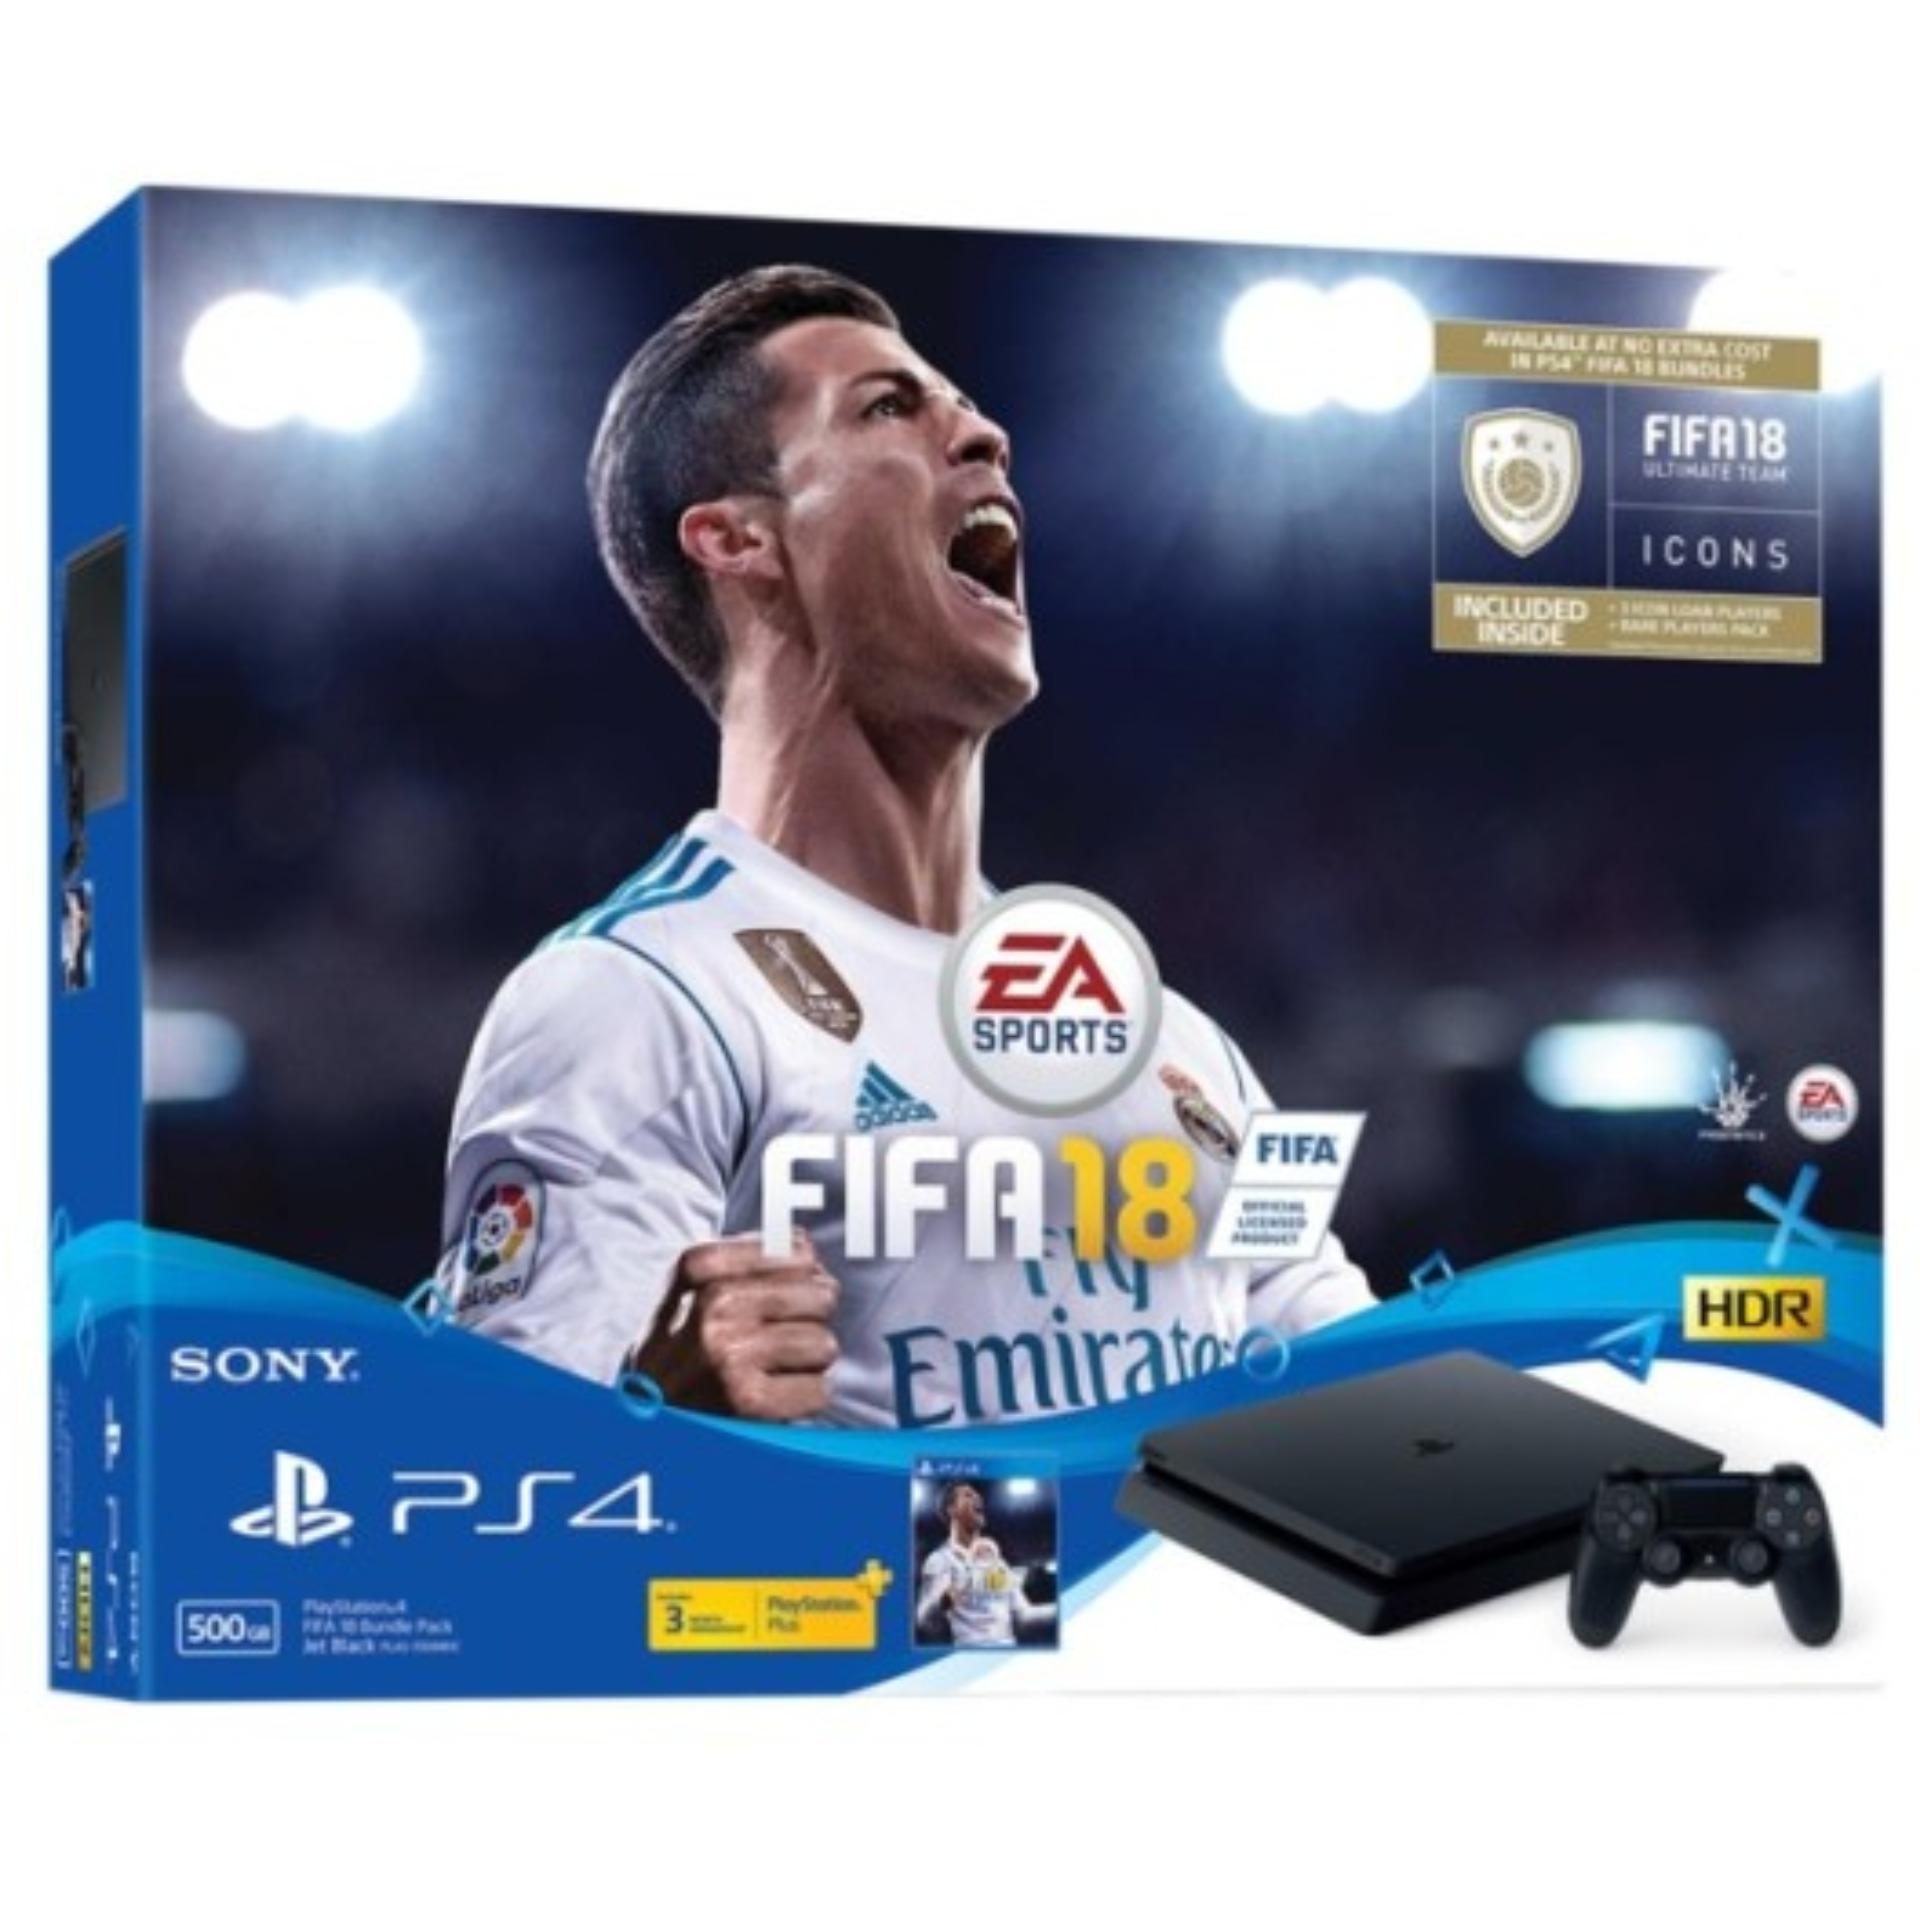 New Sony Ps4 Slim Console 500Gb Black Ps4 Fifa 18 Reviews